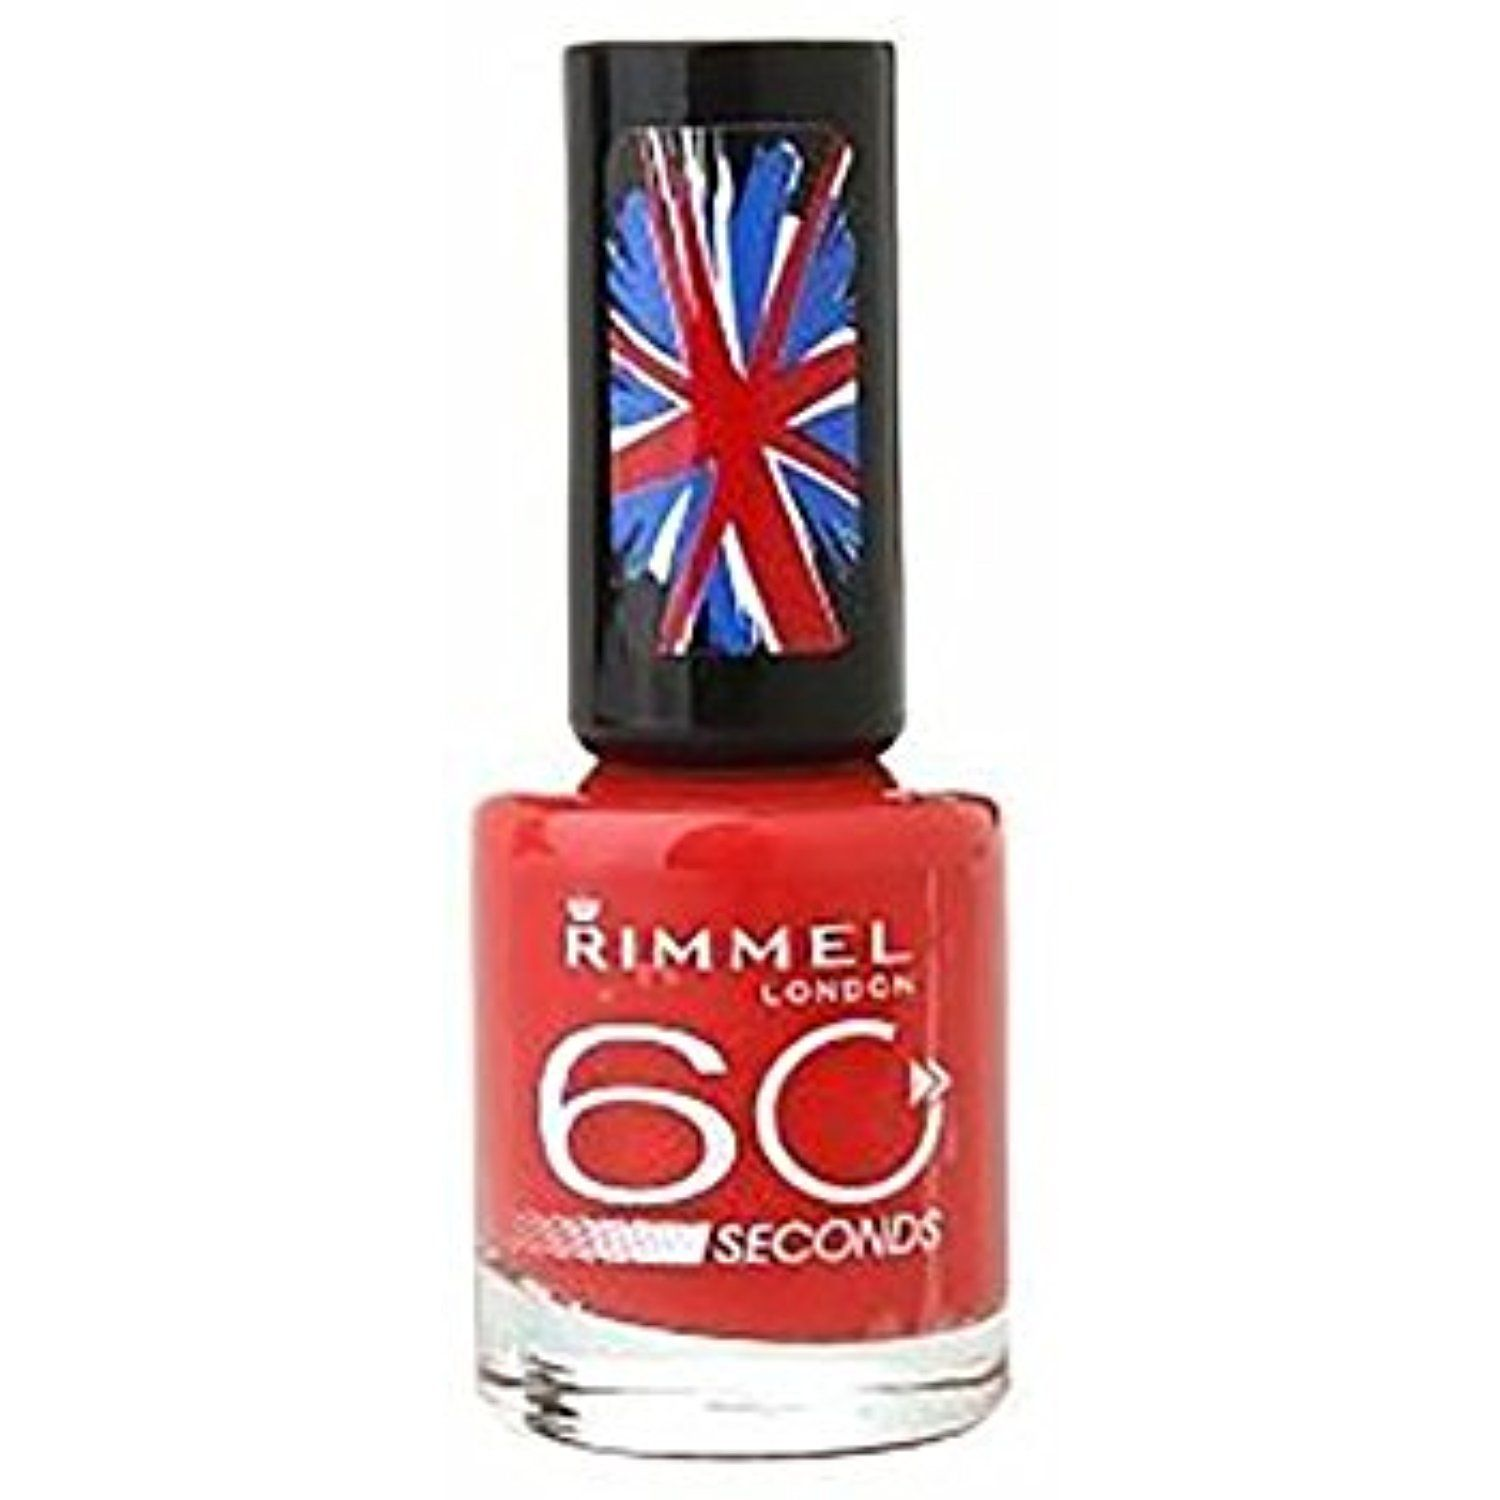 Rimmel 60 Seconds 120 Hot Chilli Pepper More Info Could Be Found At The Image Url This Is An Affiliate Link S Rimmel Cosmetics Rimmel Nail Polish Rimmel